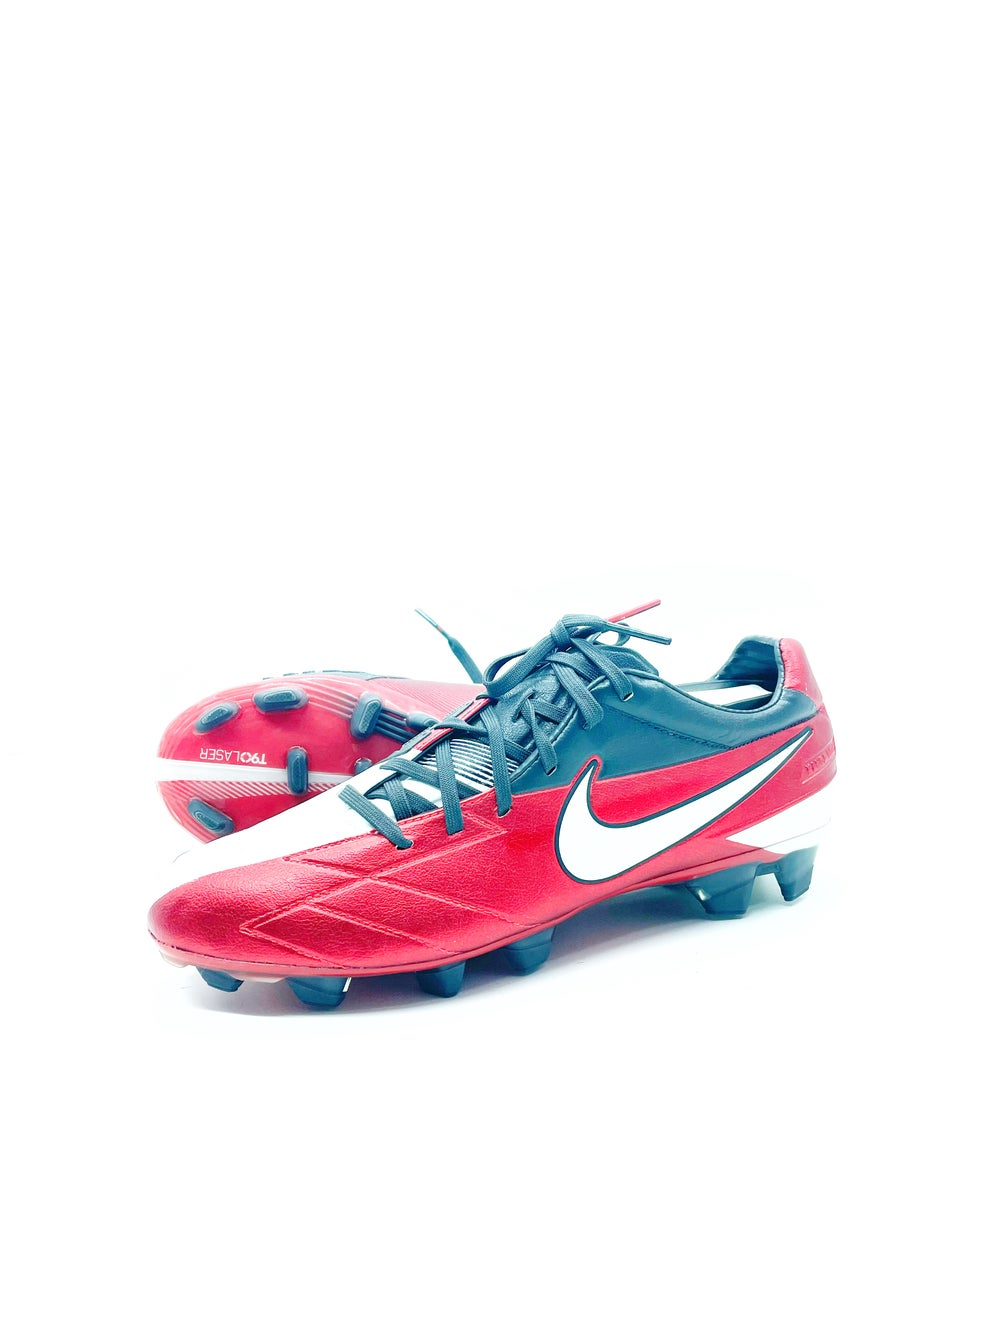 Image of Nike total 90 Laser III FG red